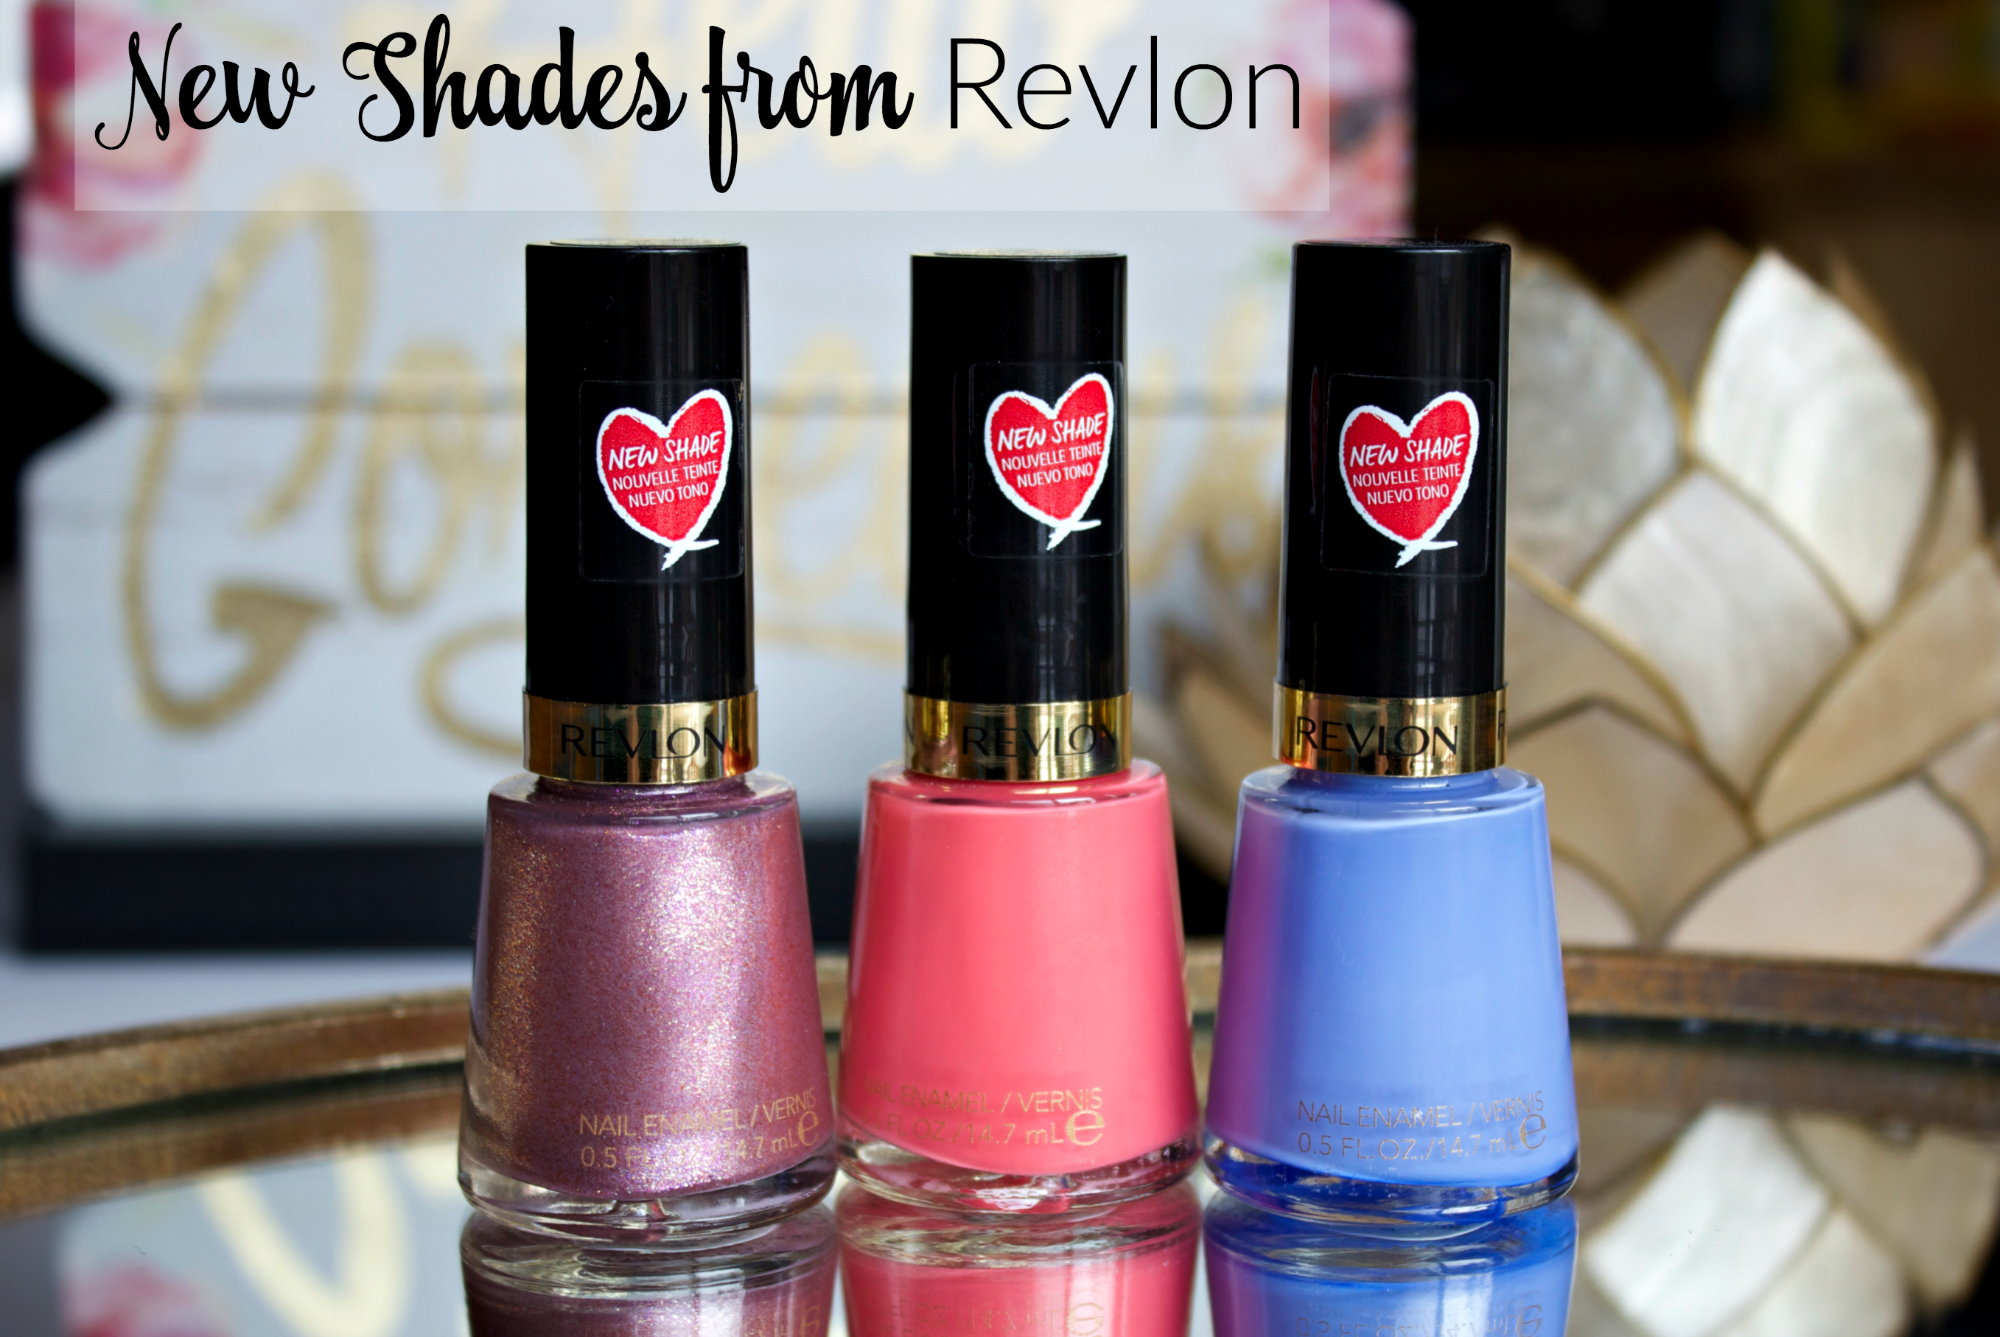 New Revlon Nail Polish Shades For 2016 The Feminine Files